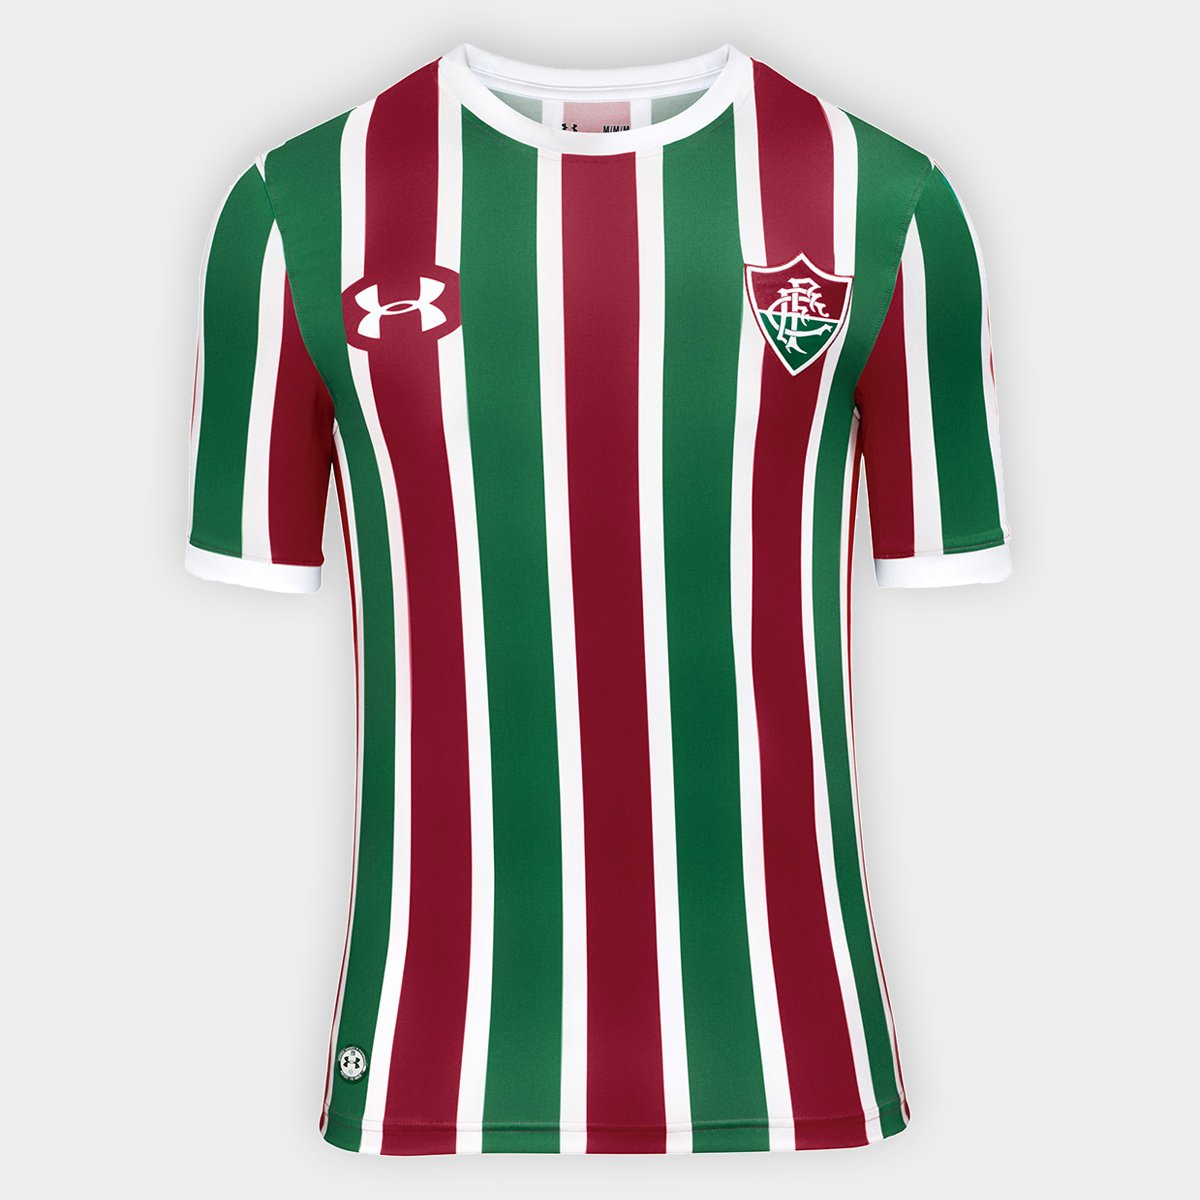 8859be9870 Camisa Fluminense I 17 18 s nº Torcedor Under Armour Masculina